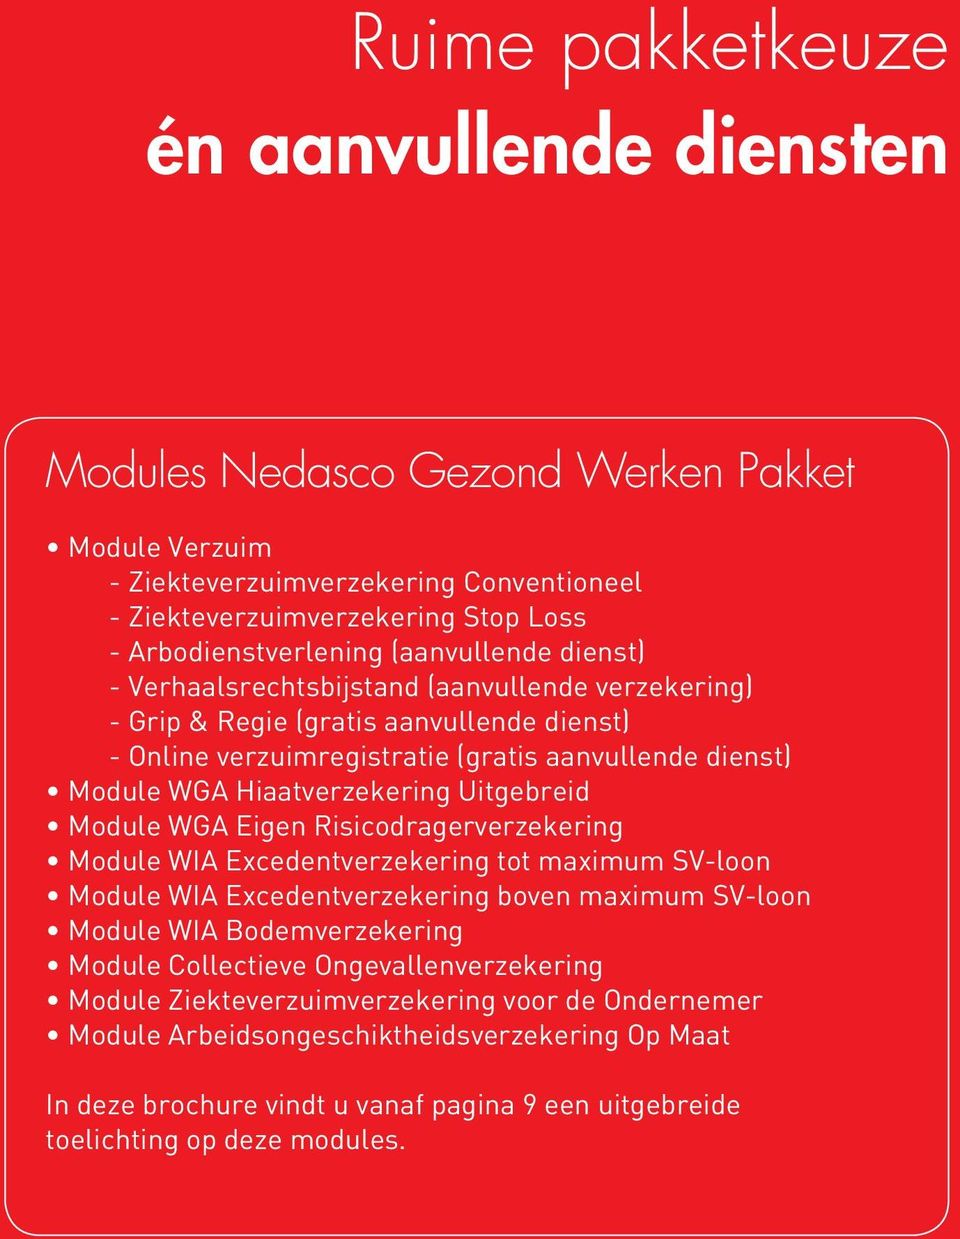 Uitgebreid Module WGA Eigen Risicodragerverzekering Module WIA Excedentverzekering tot maximum SV-loon Module WIA Excedentverzekering boven maximum SV-loon Module WIA Bodemverzekering Module